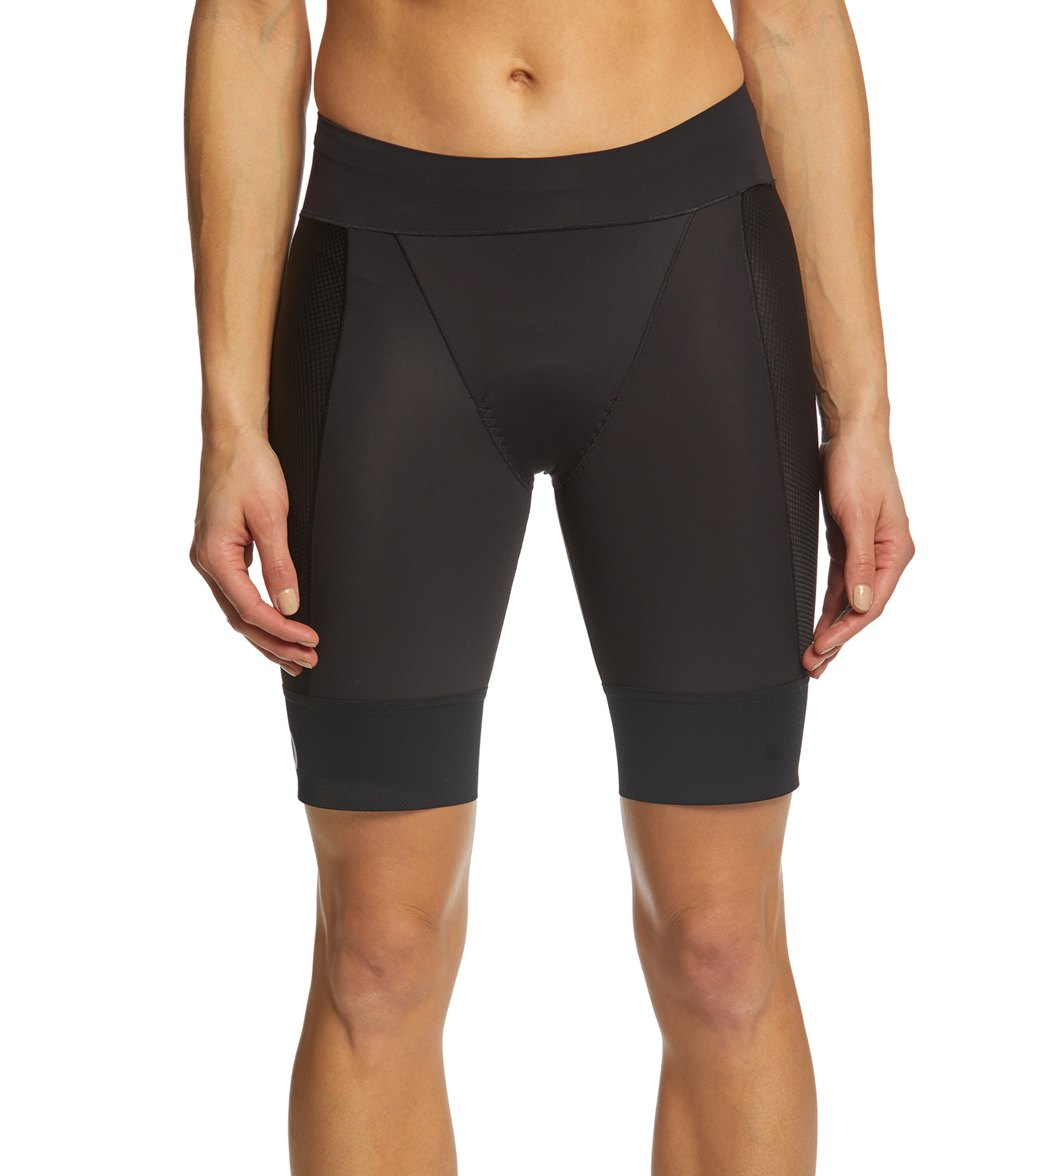 b3e08f62f64c Pearl Izumi Women s Elite Pursuit Tri Short at SwimOutlet.com - Free  Shipping